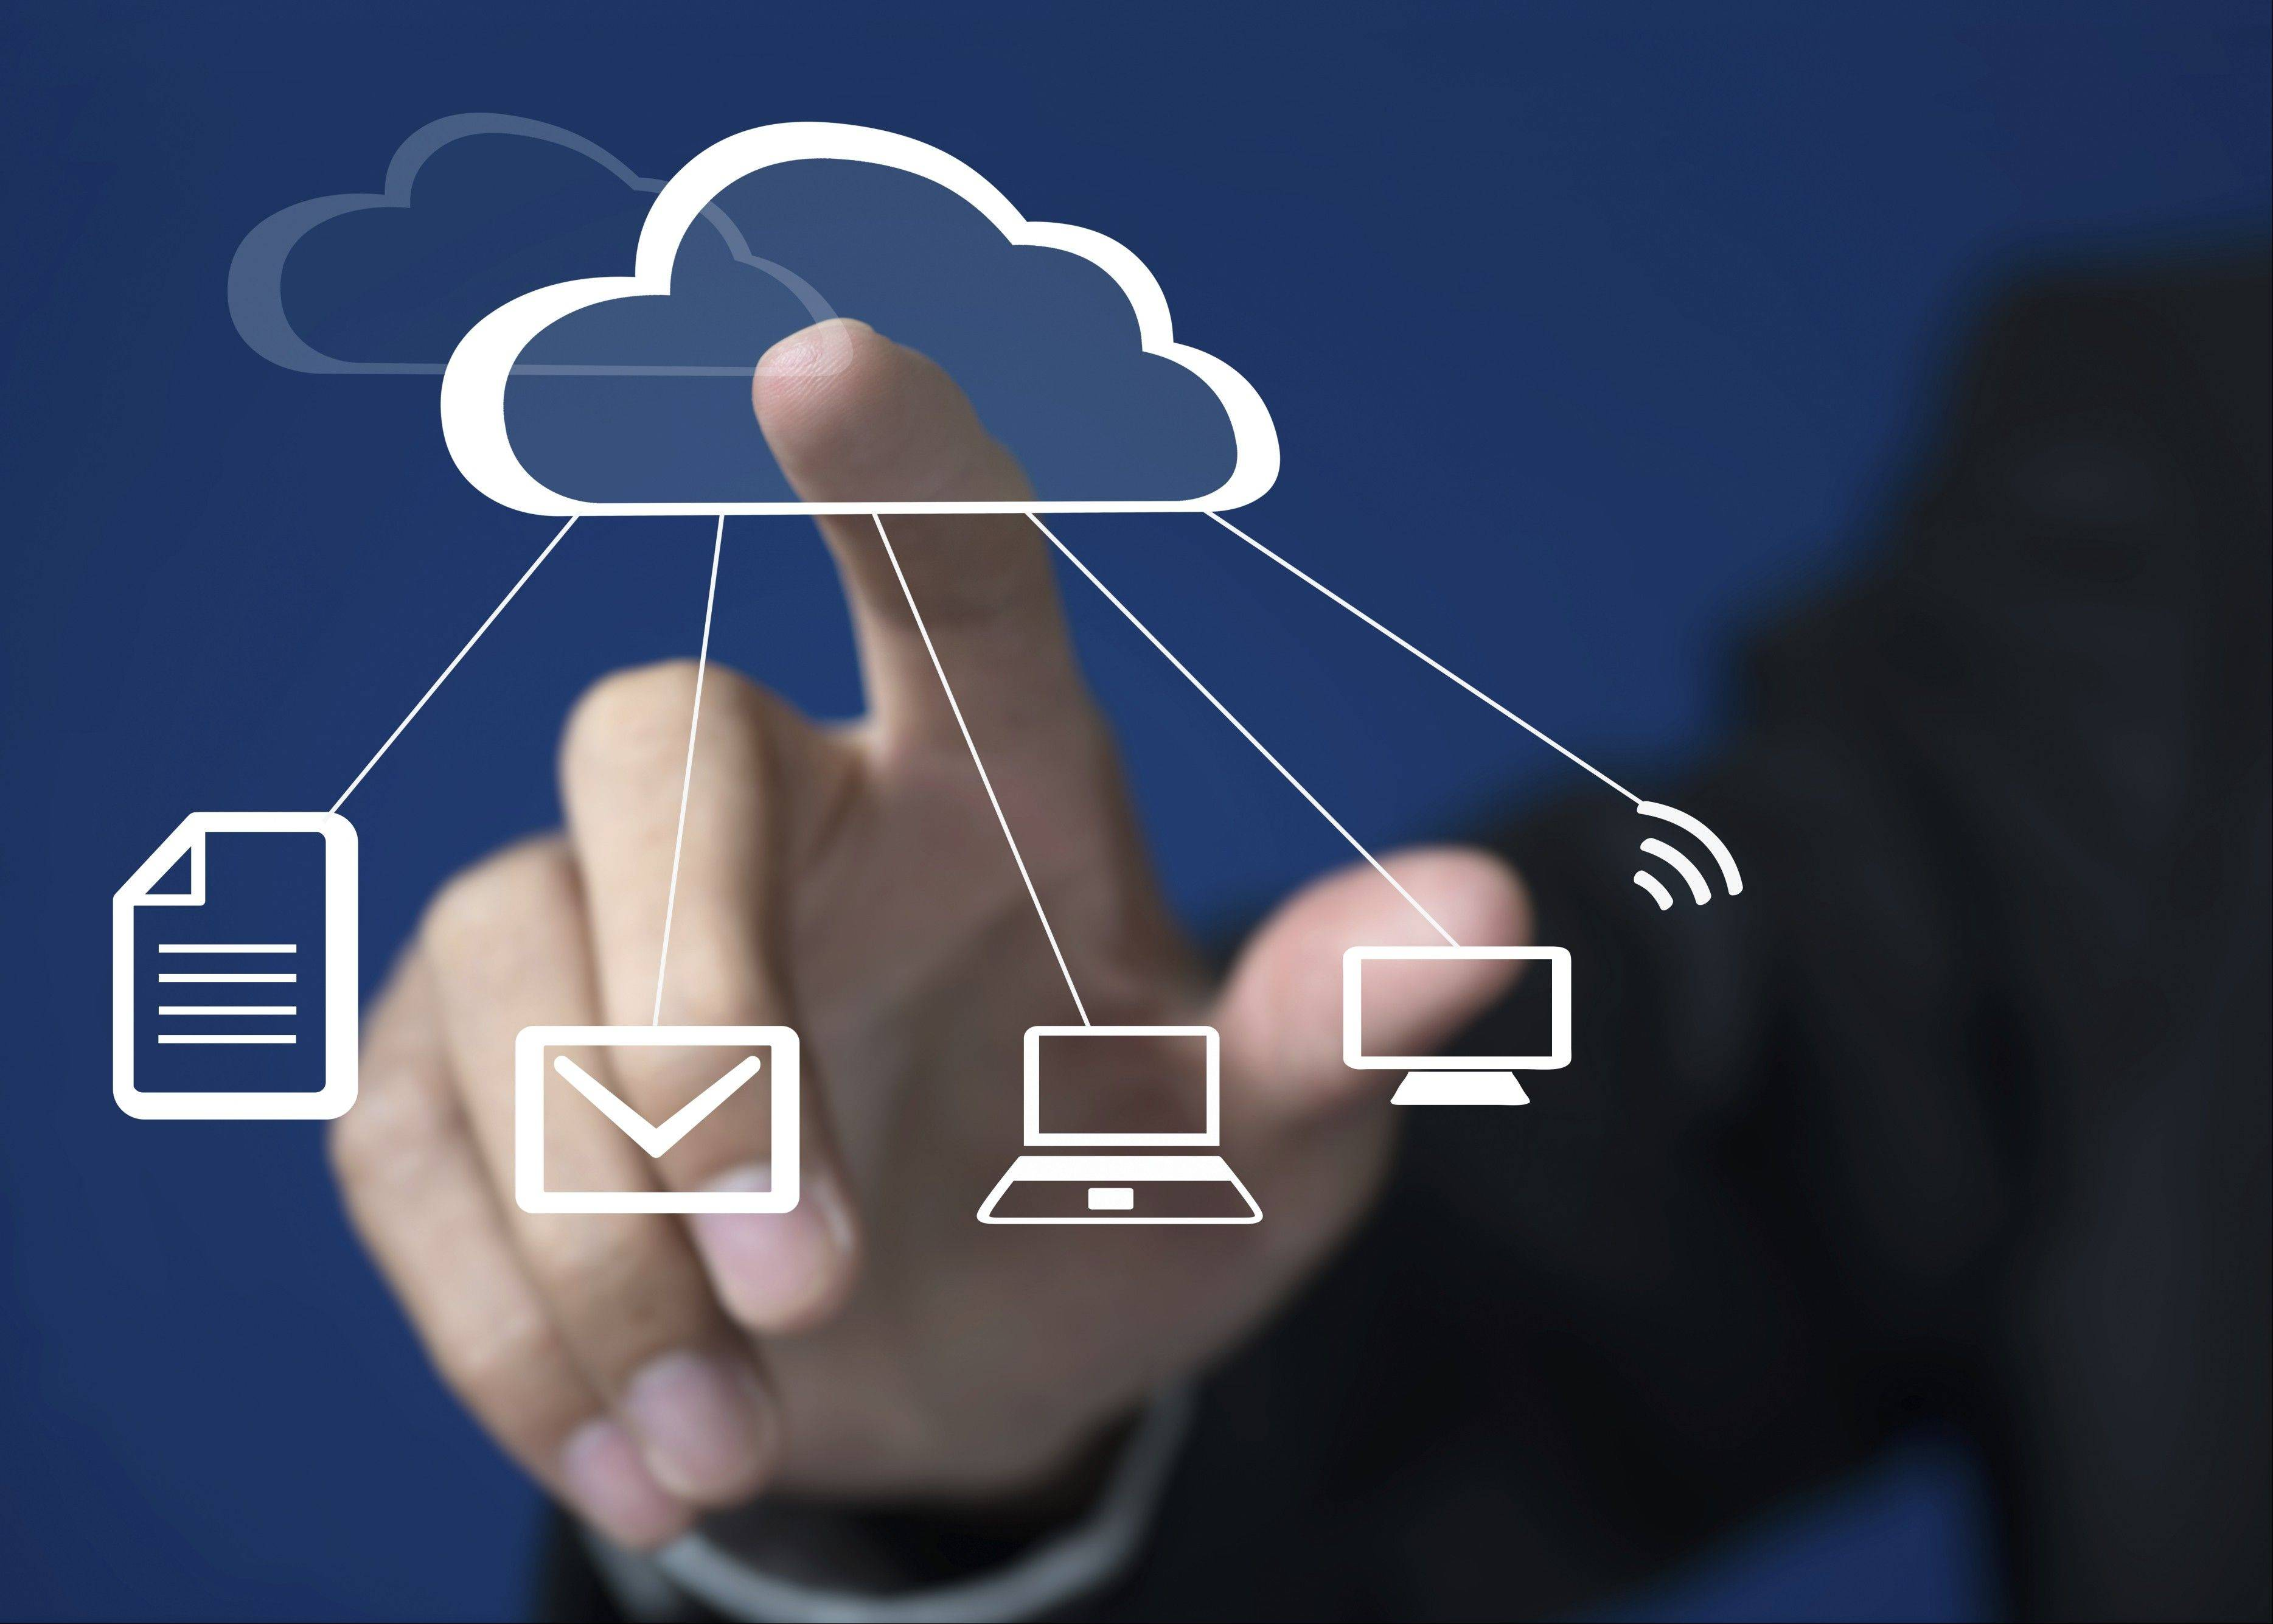 The cloud will be used more for data storage that will help various devices.